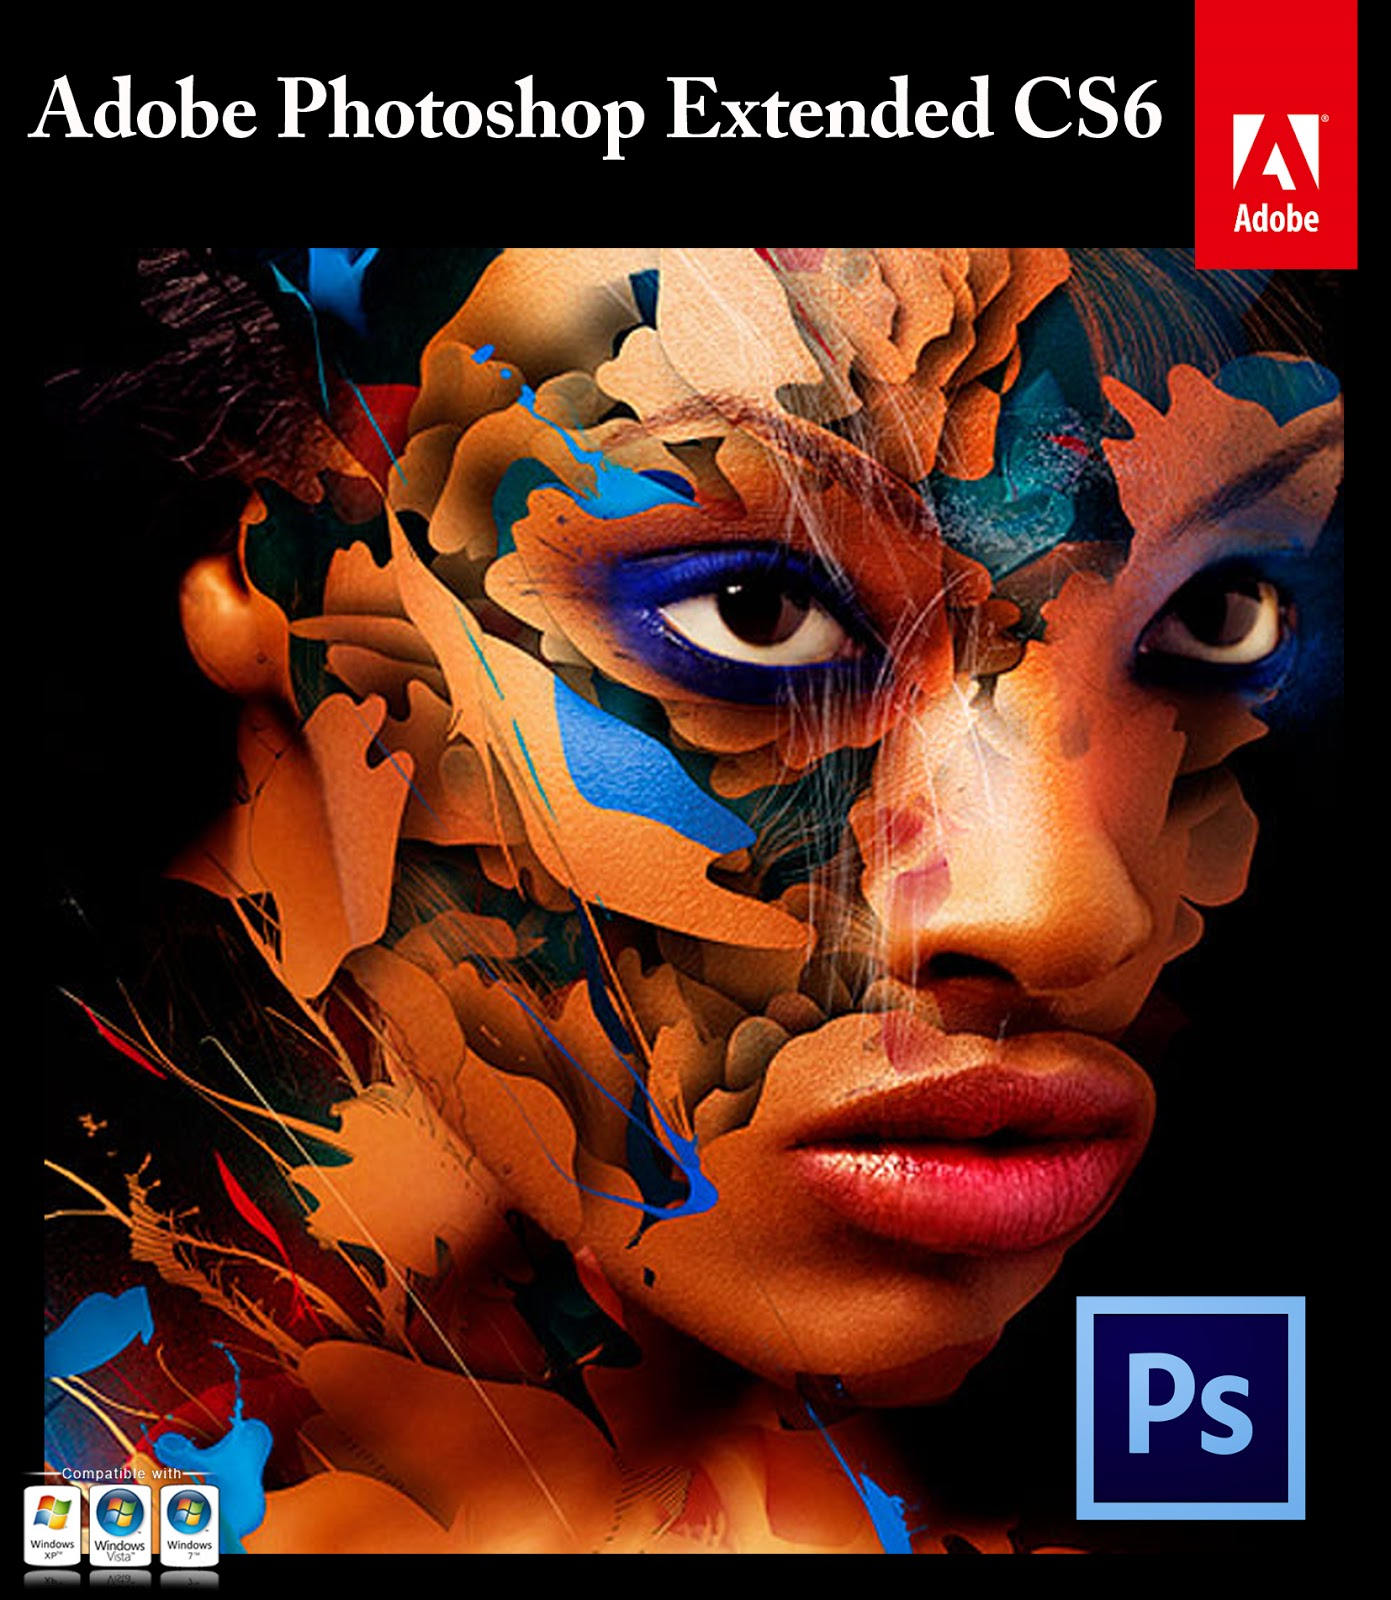 adobe photoshop cs6 free download full version for windows 7 cracked